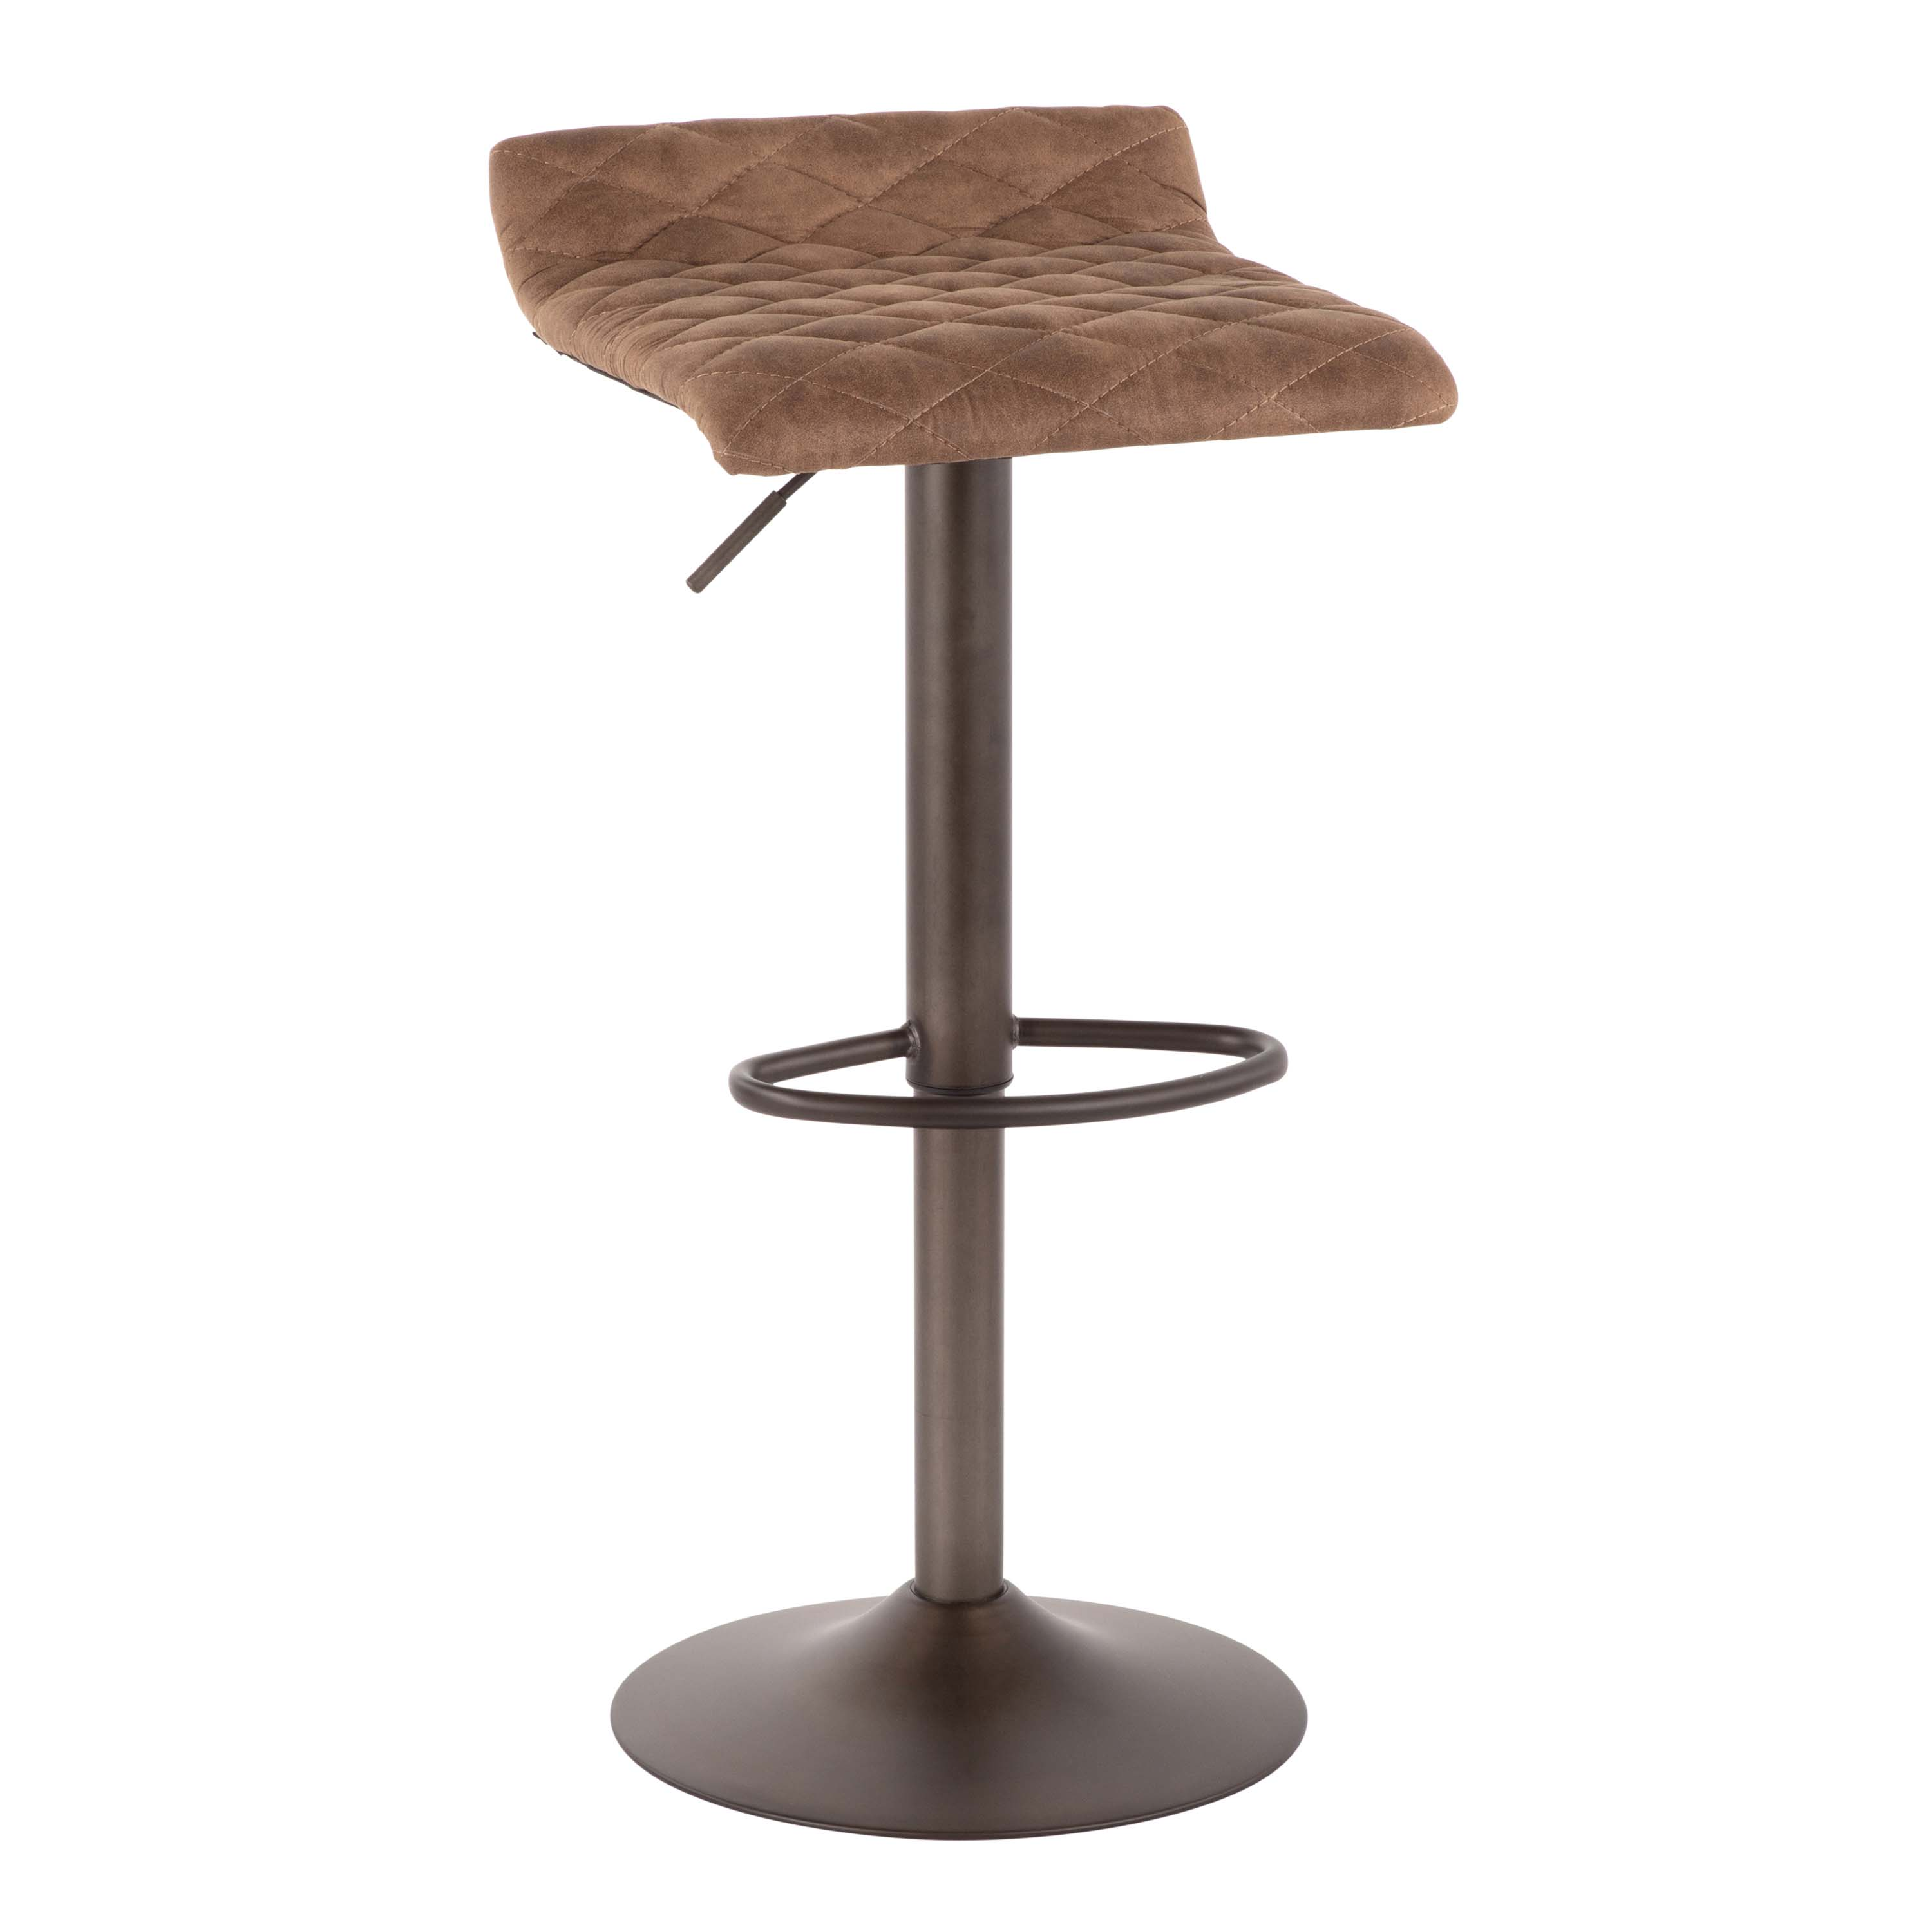 Super Details About Lumisource Ale Industrial Bar Stool Bs Cavale An Bn Alphanode Cool Chair Designs And Ideas Alphanodeonline